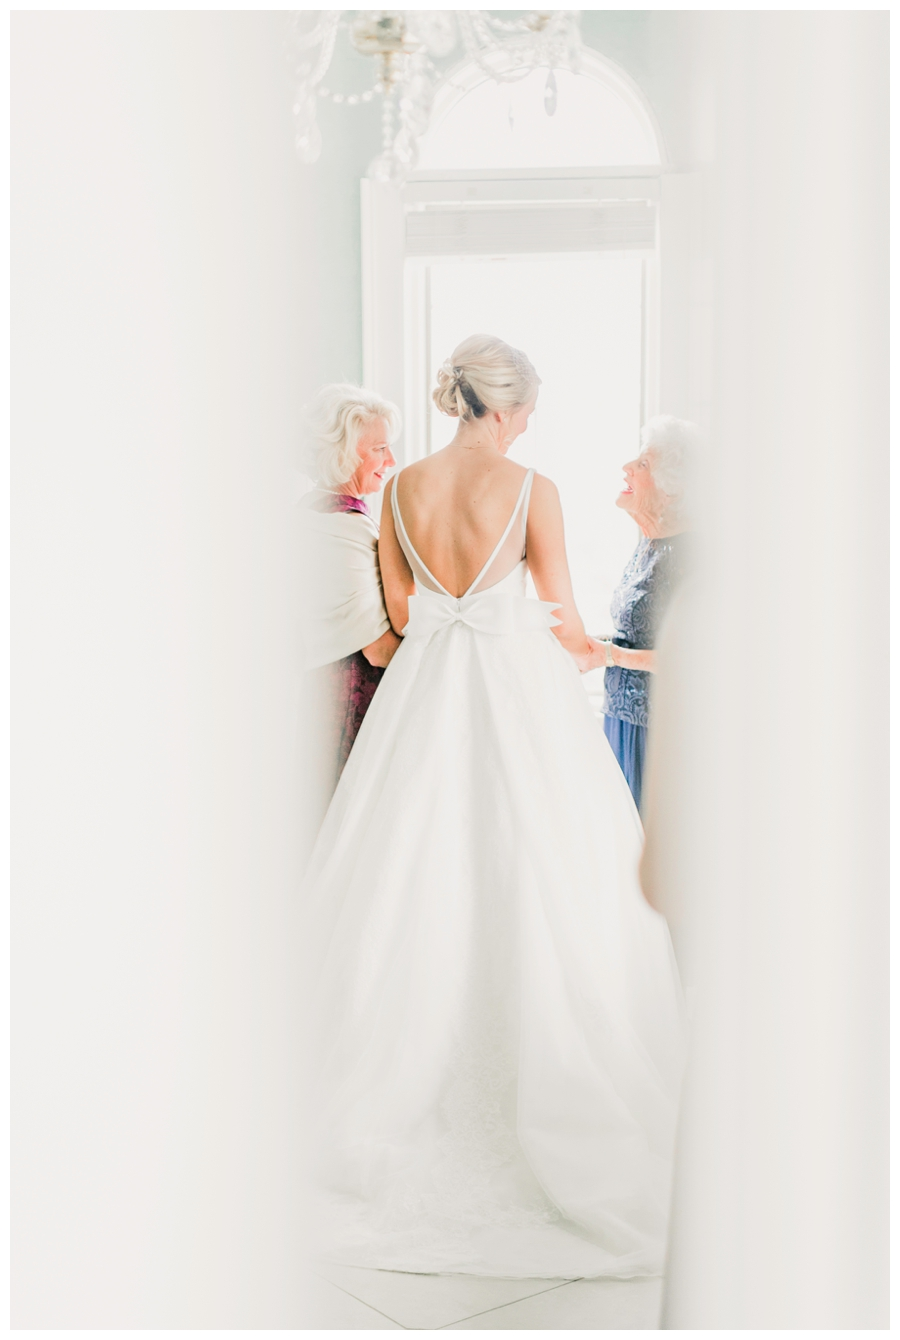 Light and Airy Photos of the bride in front of a window_0016.jpg